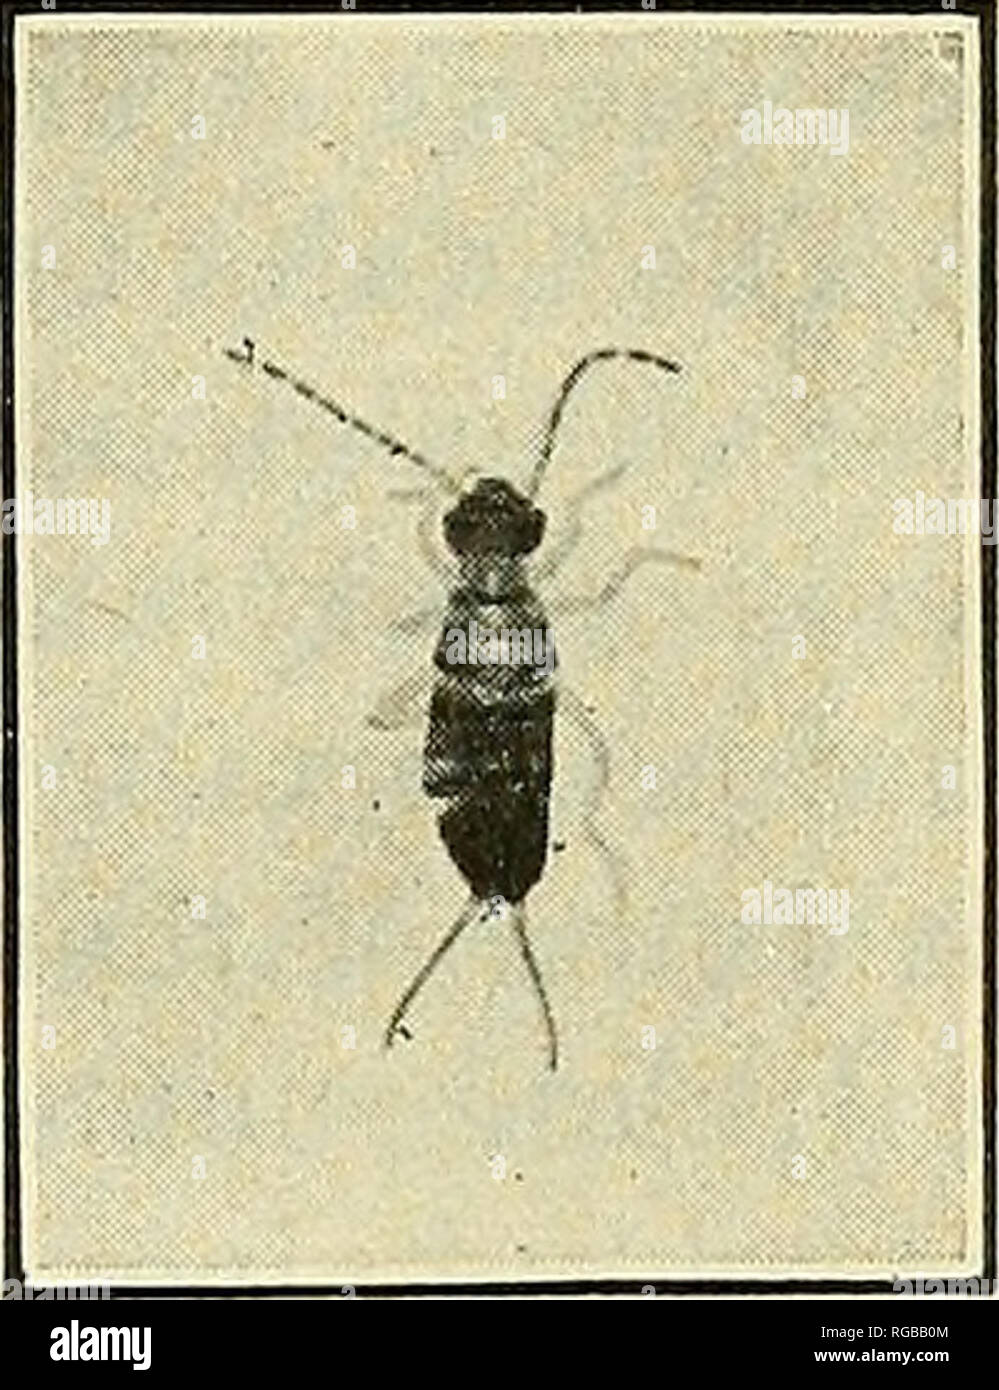 . Bulletin of the U.S. Department of Agriculture. Agriculture; Agriculture. THE EUROPEAN EARWIG AND ITS CONTROL. legs and a dull-brown head (fig. 3). There are four larva stages which gradually approach the adult in size and color. The change from the fourth larva stage to the adult form takes place about July 18. When first hatched the larvae leave their under- ground nests, most noticeably on warm nights about two hours after dark. They swarm over the ground, but usually stay within 2 or 3 feet of the entrance to their nest. On cold nights few can be found. As they grow older they are active - Stock Image